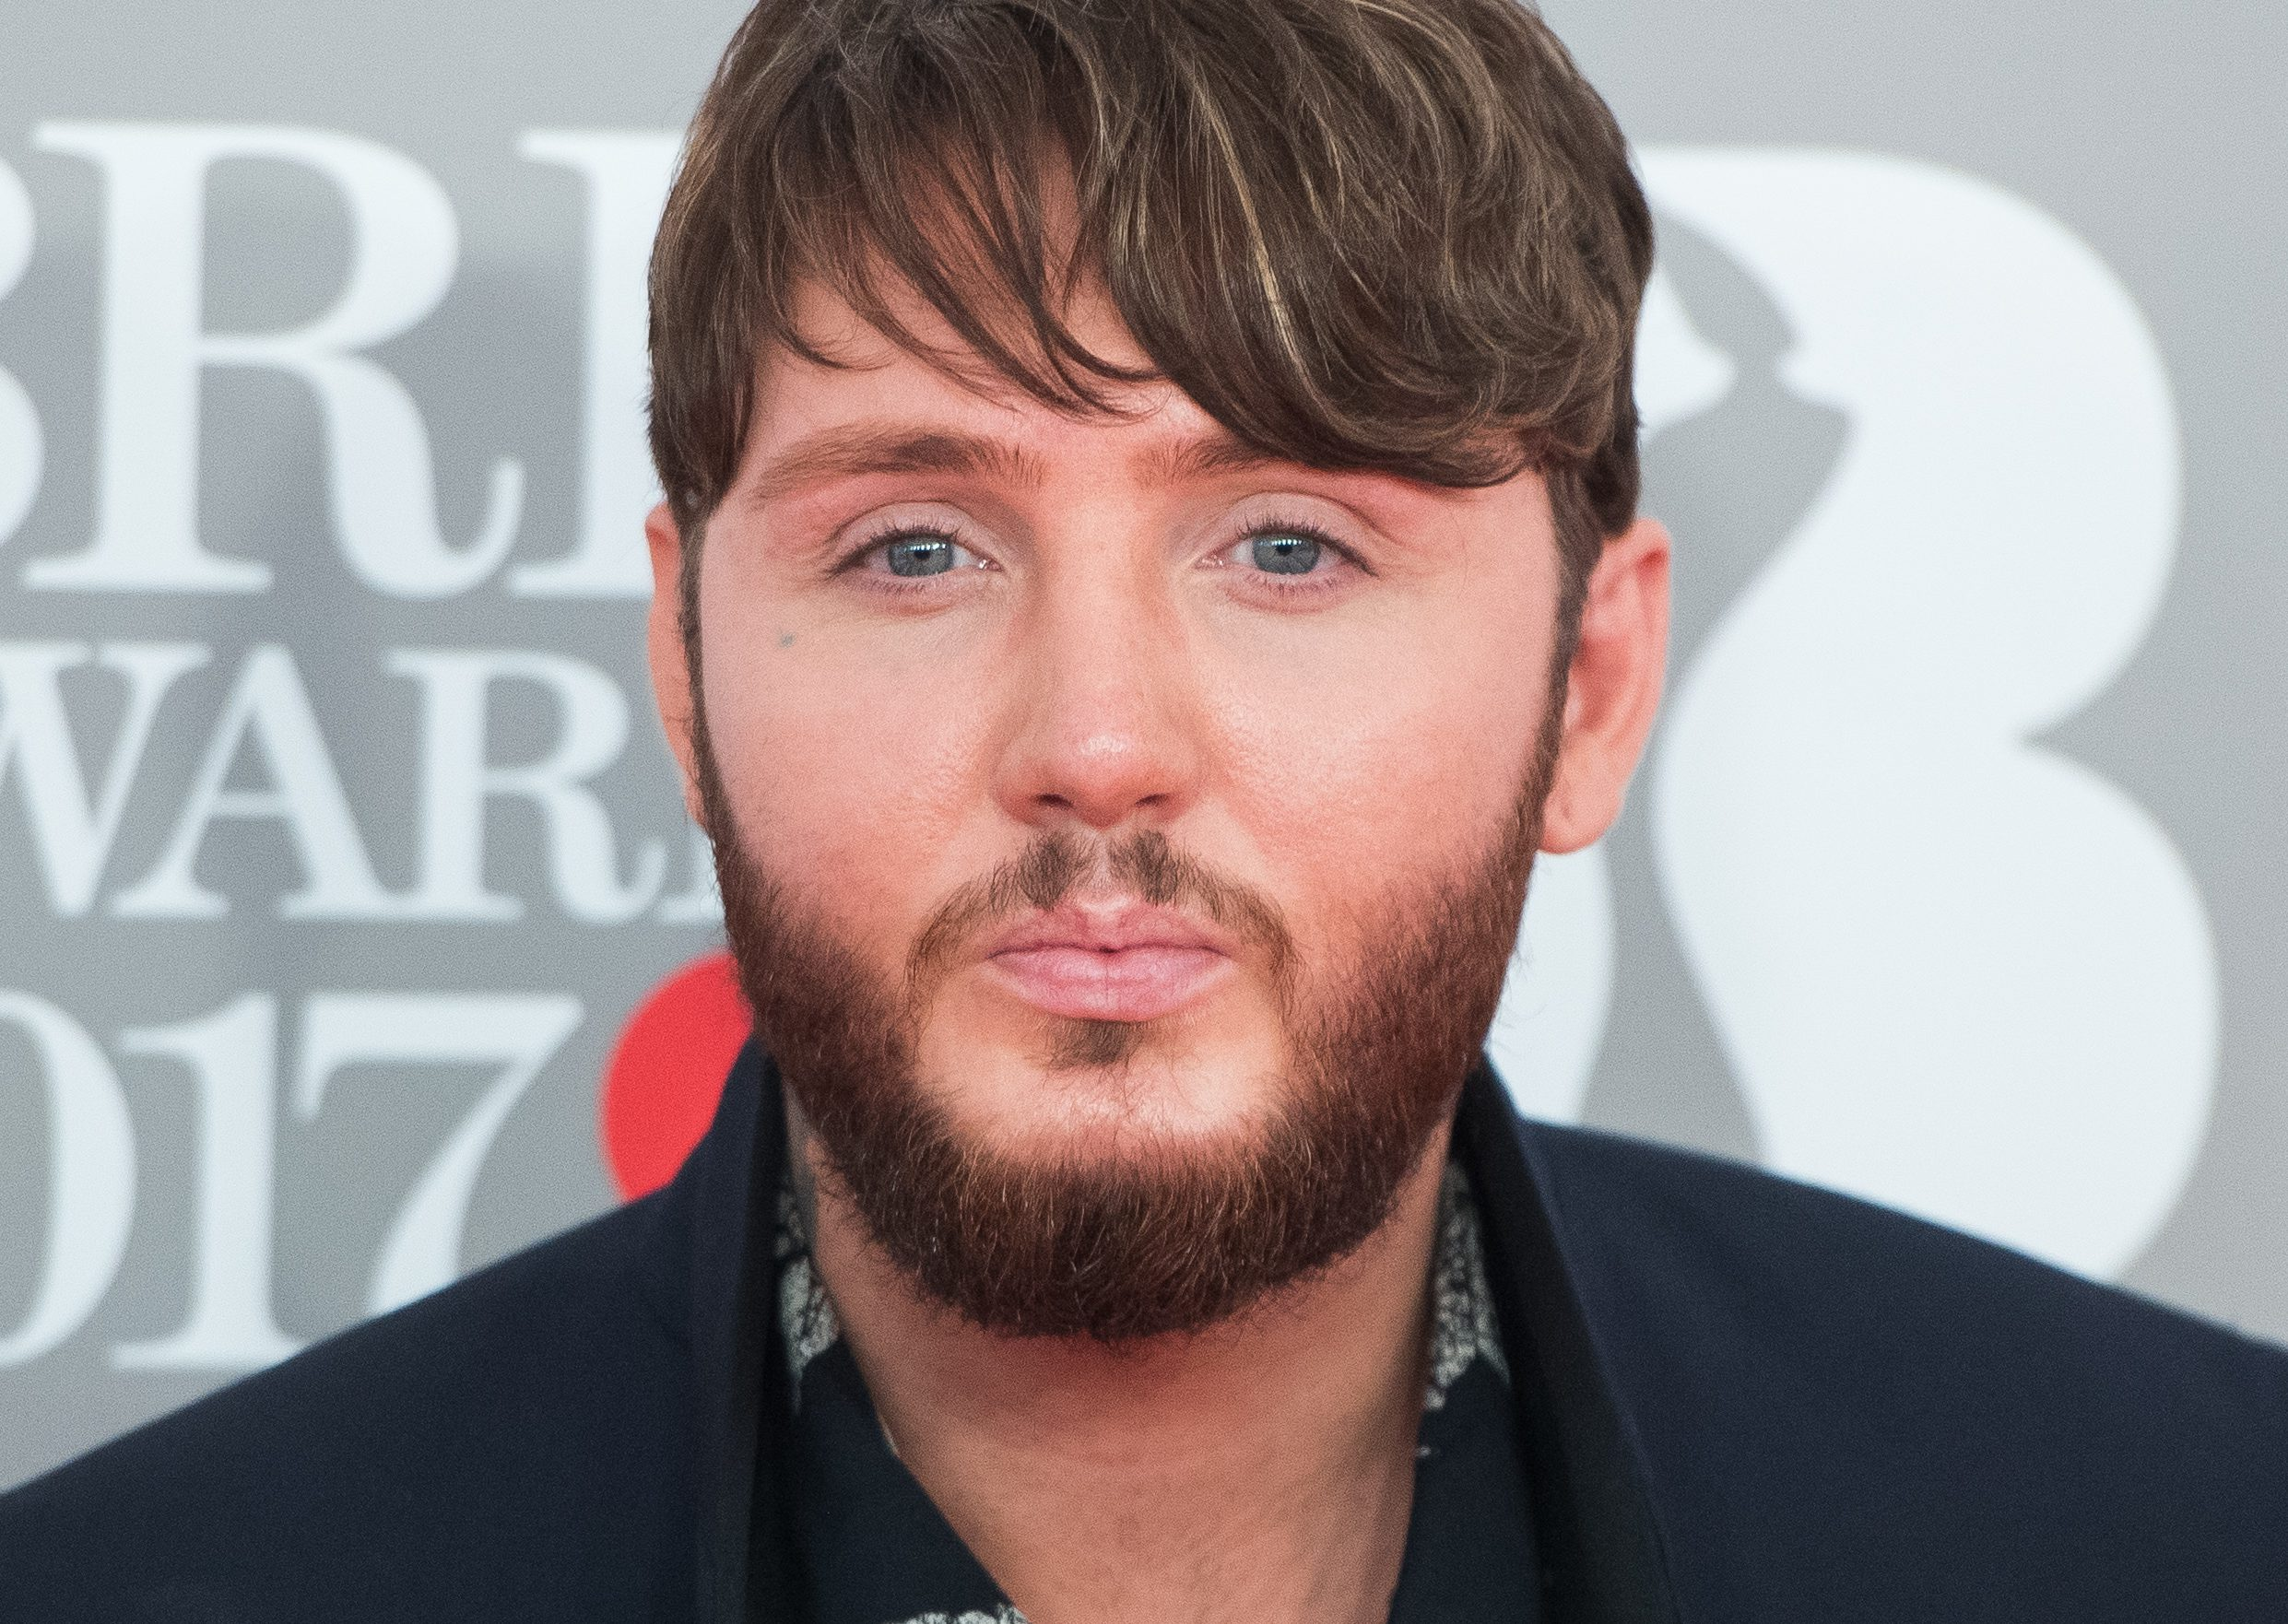 LONDON, ENGLAND - FEBRUARY 22: EDITORIAL USE ONLY. James Arthur attends The BRIT Awards 2017 at The O2 Arena on February 22, 2017 in London, England. (Photo by Samir Hussein/Samir Hussein/Redferns)